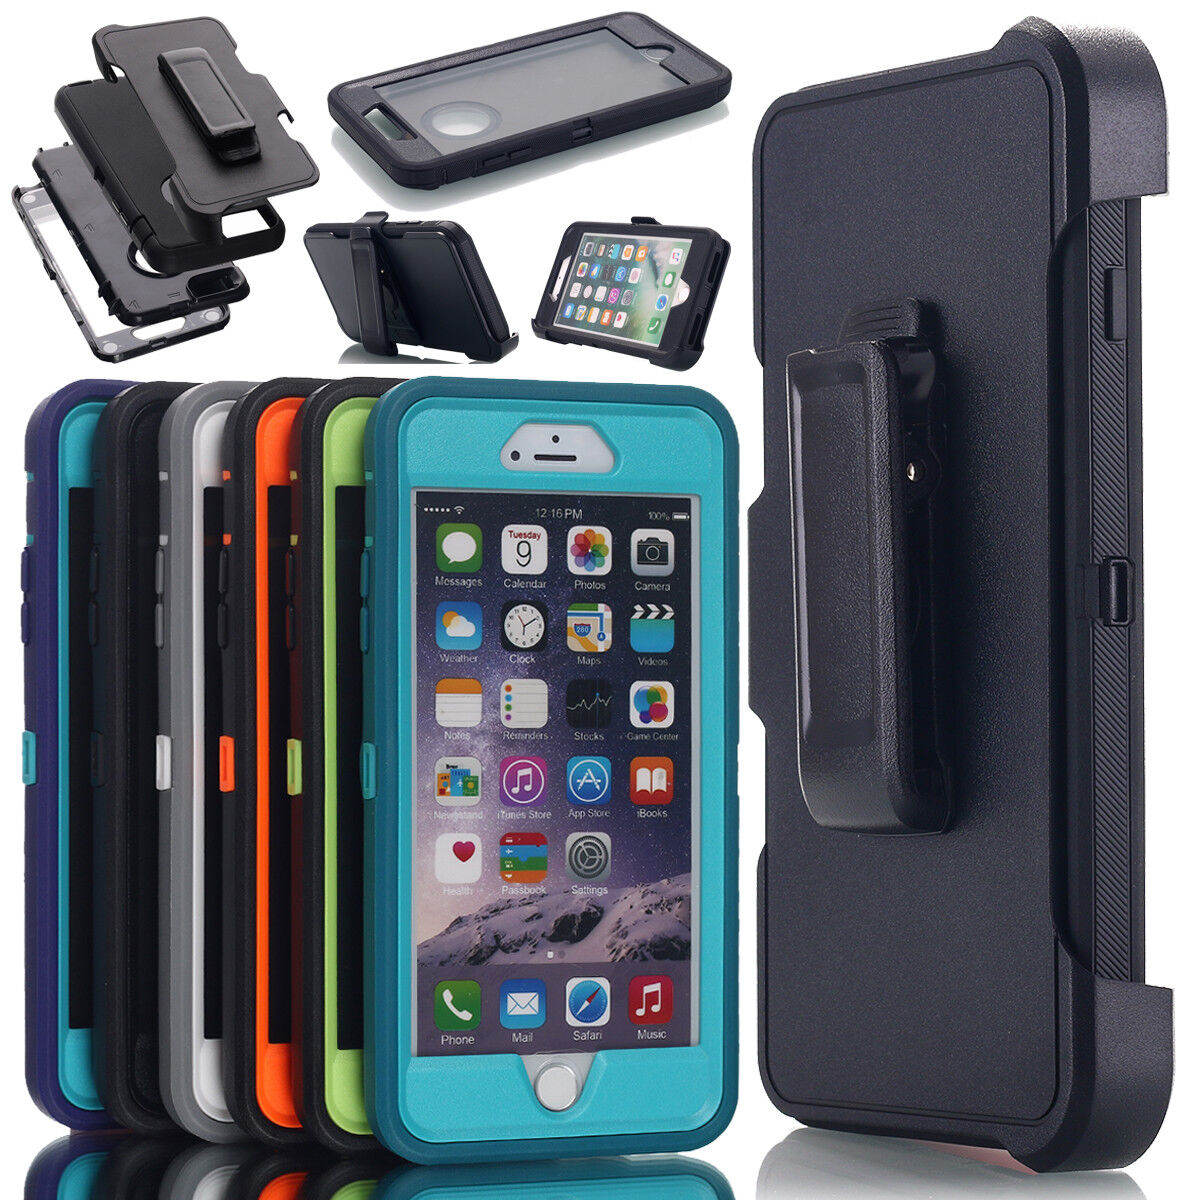 Shockproof Hard Armor Case Cover w/Holster Belt Clip For iPh